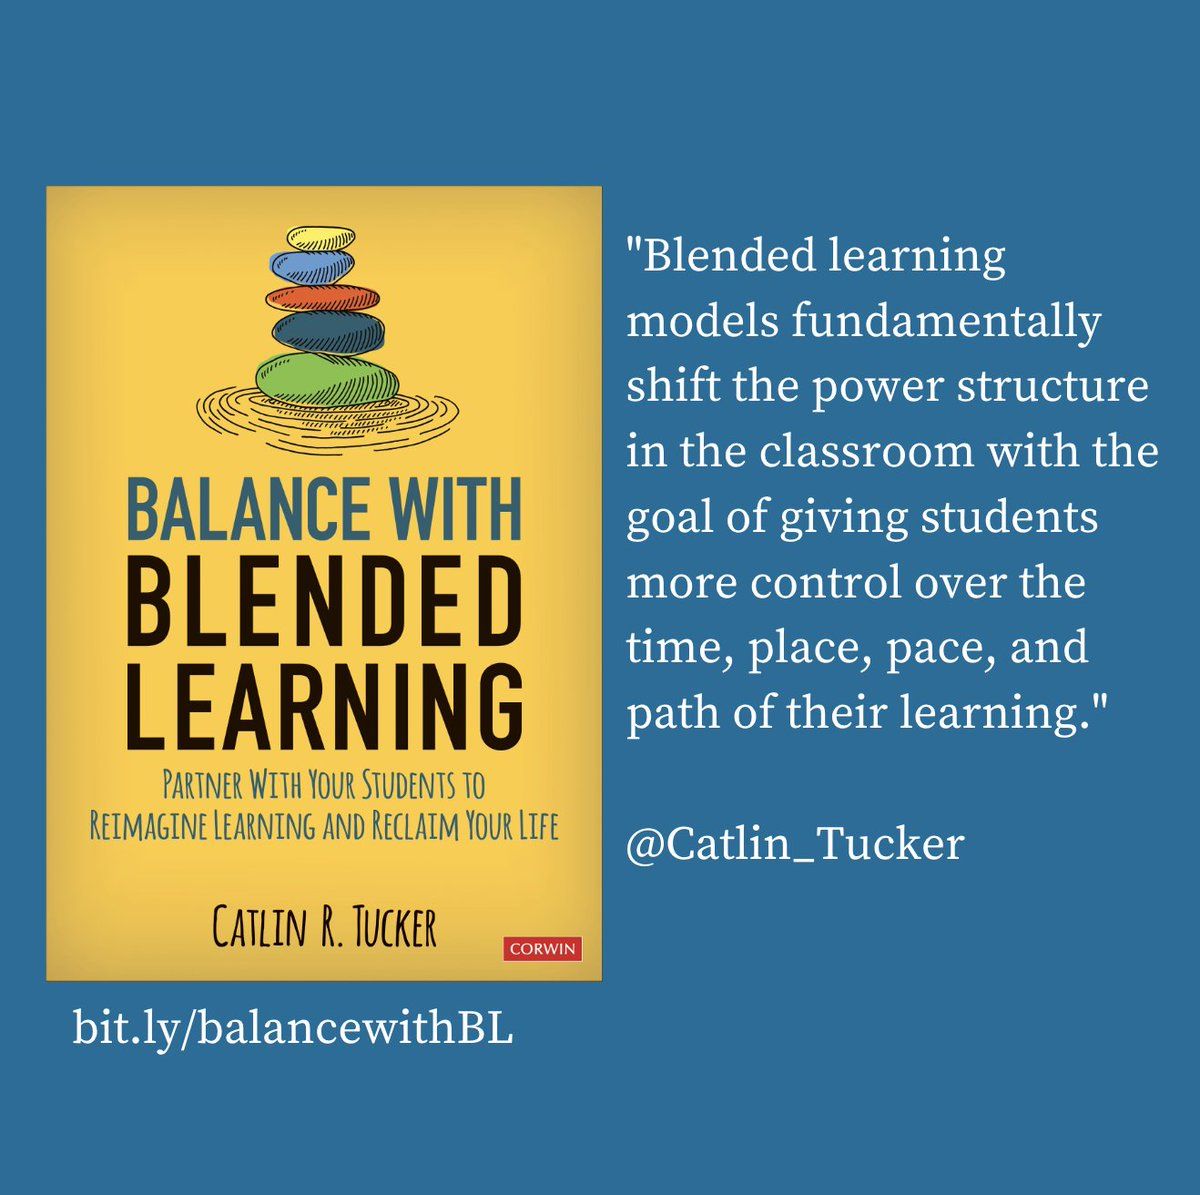 As #teachers think about (& prepare for) next school year, I hope they'll explore #blendedlearning to ensure students are prepared to learn in the classroom or online should schools be forced to close again. #edchat #BLinAction #distancelearning #RemoteLearning #onlinelearning